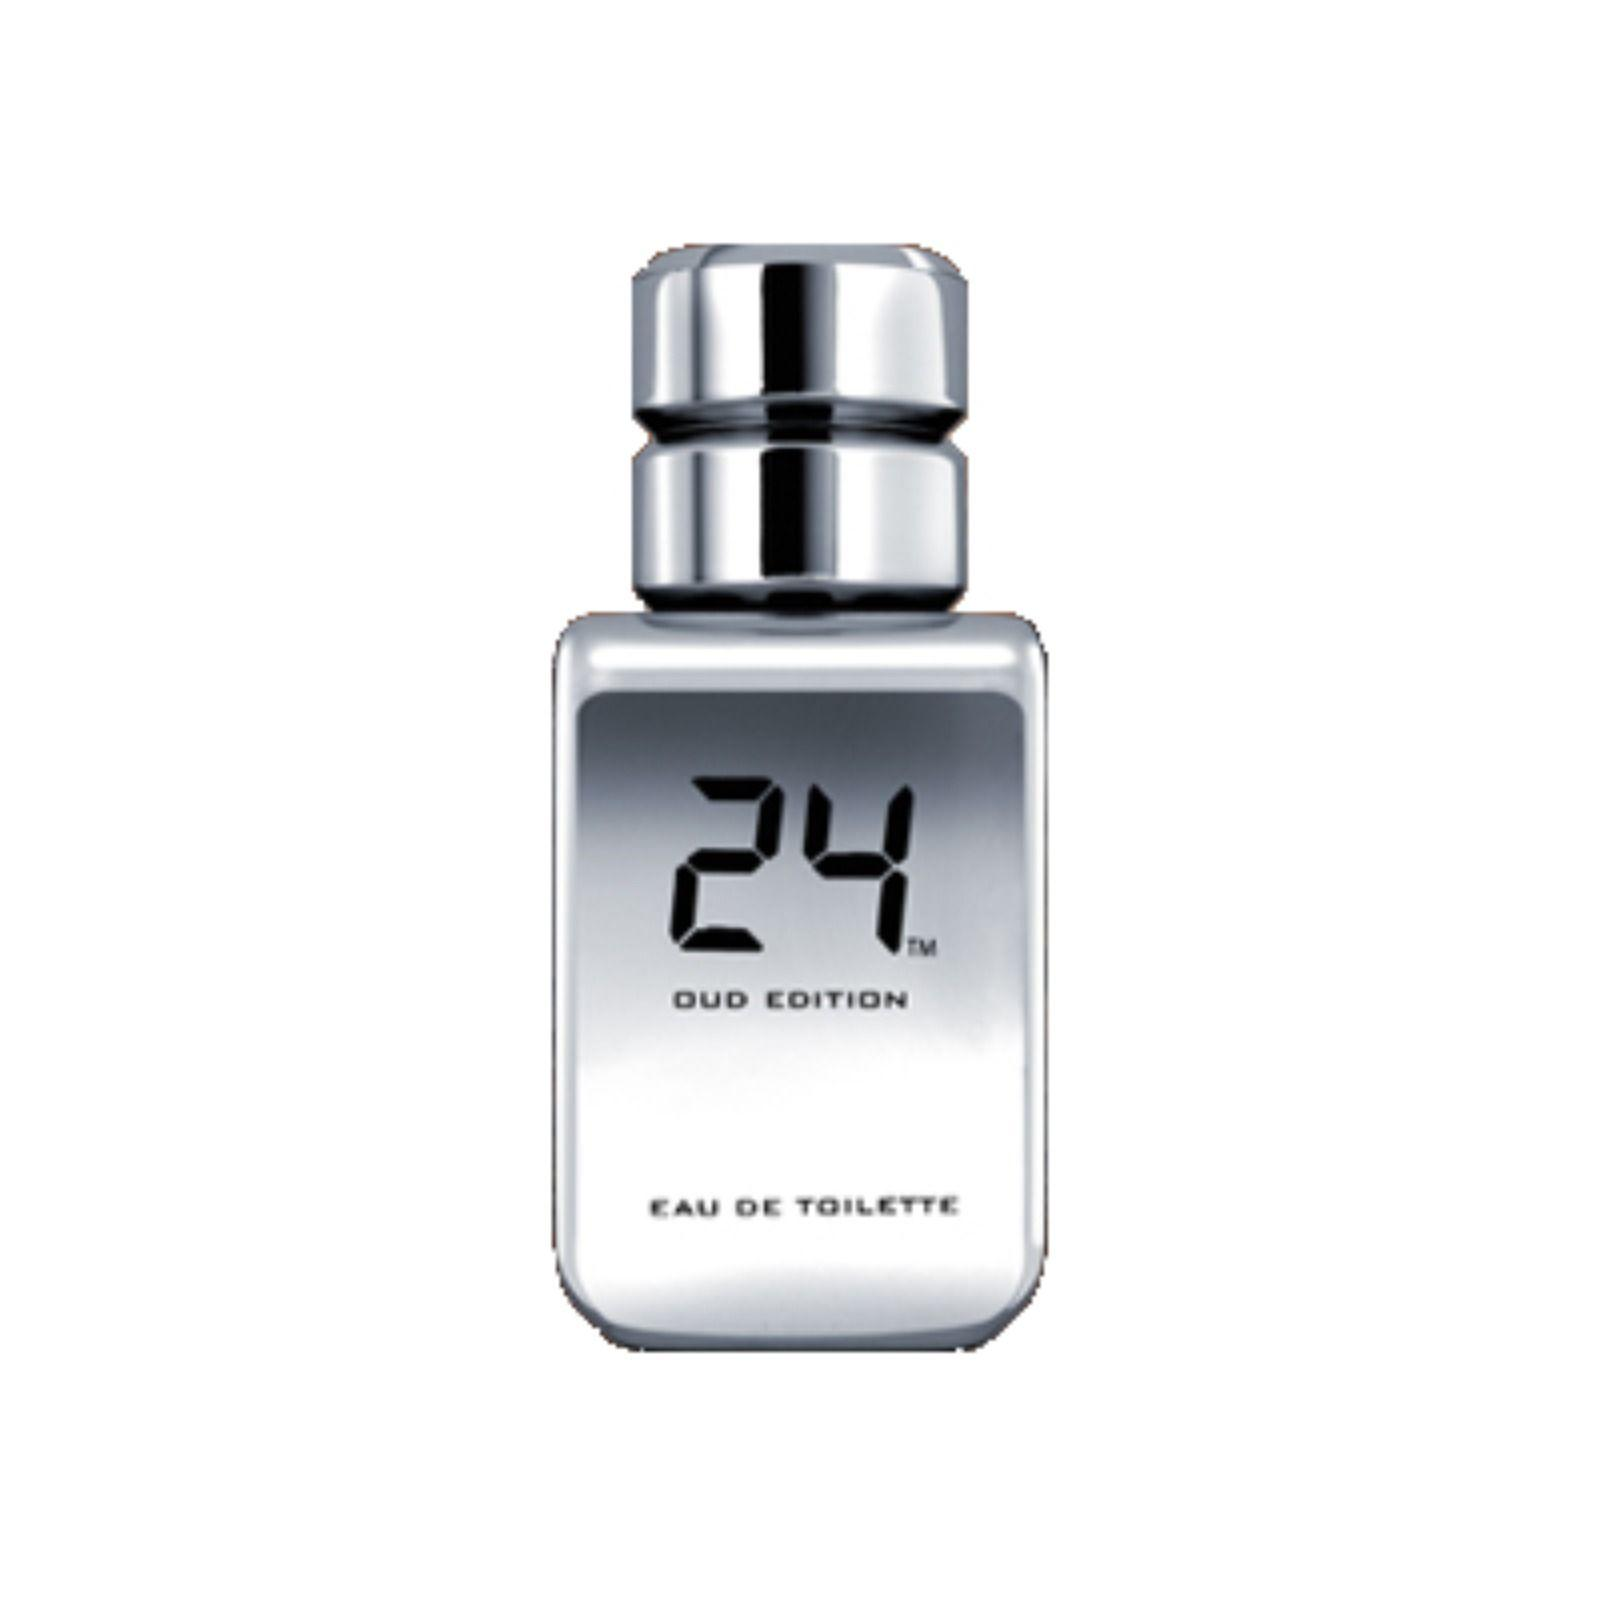 ScentStory 24 Platinum Oud Edition 100ml EDT Unisex Cologne